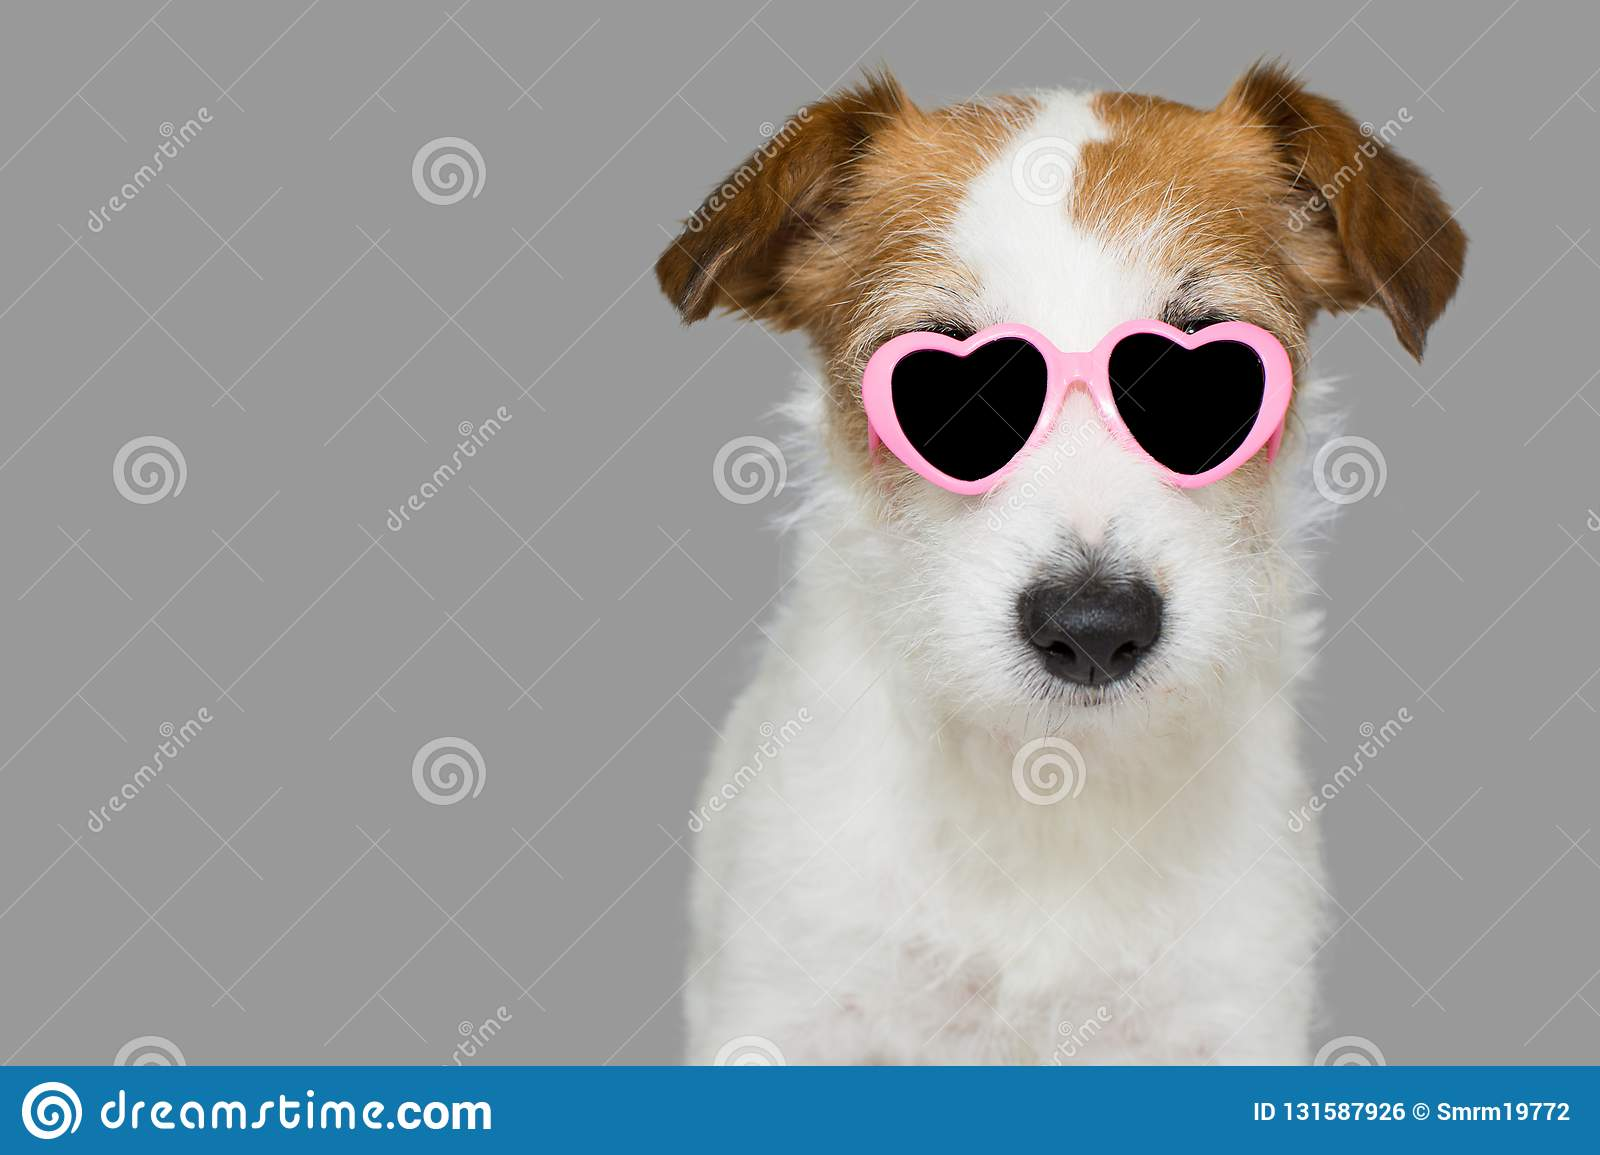 CUTE JACK RUSSELL DOG WEARING PINK EYE SUNGLASSES WITH HEART SHAPE. ISOLATED AGAINST GRAY BACKGROUND